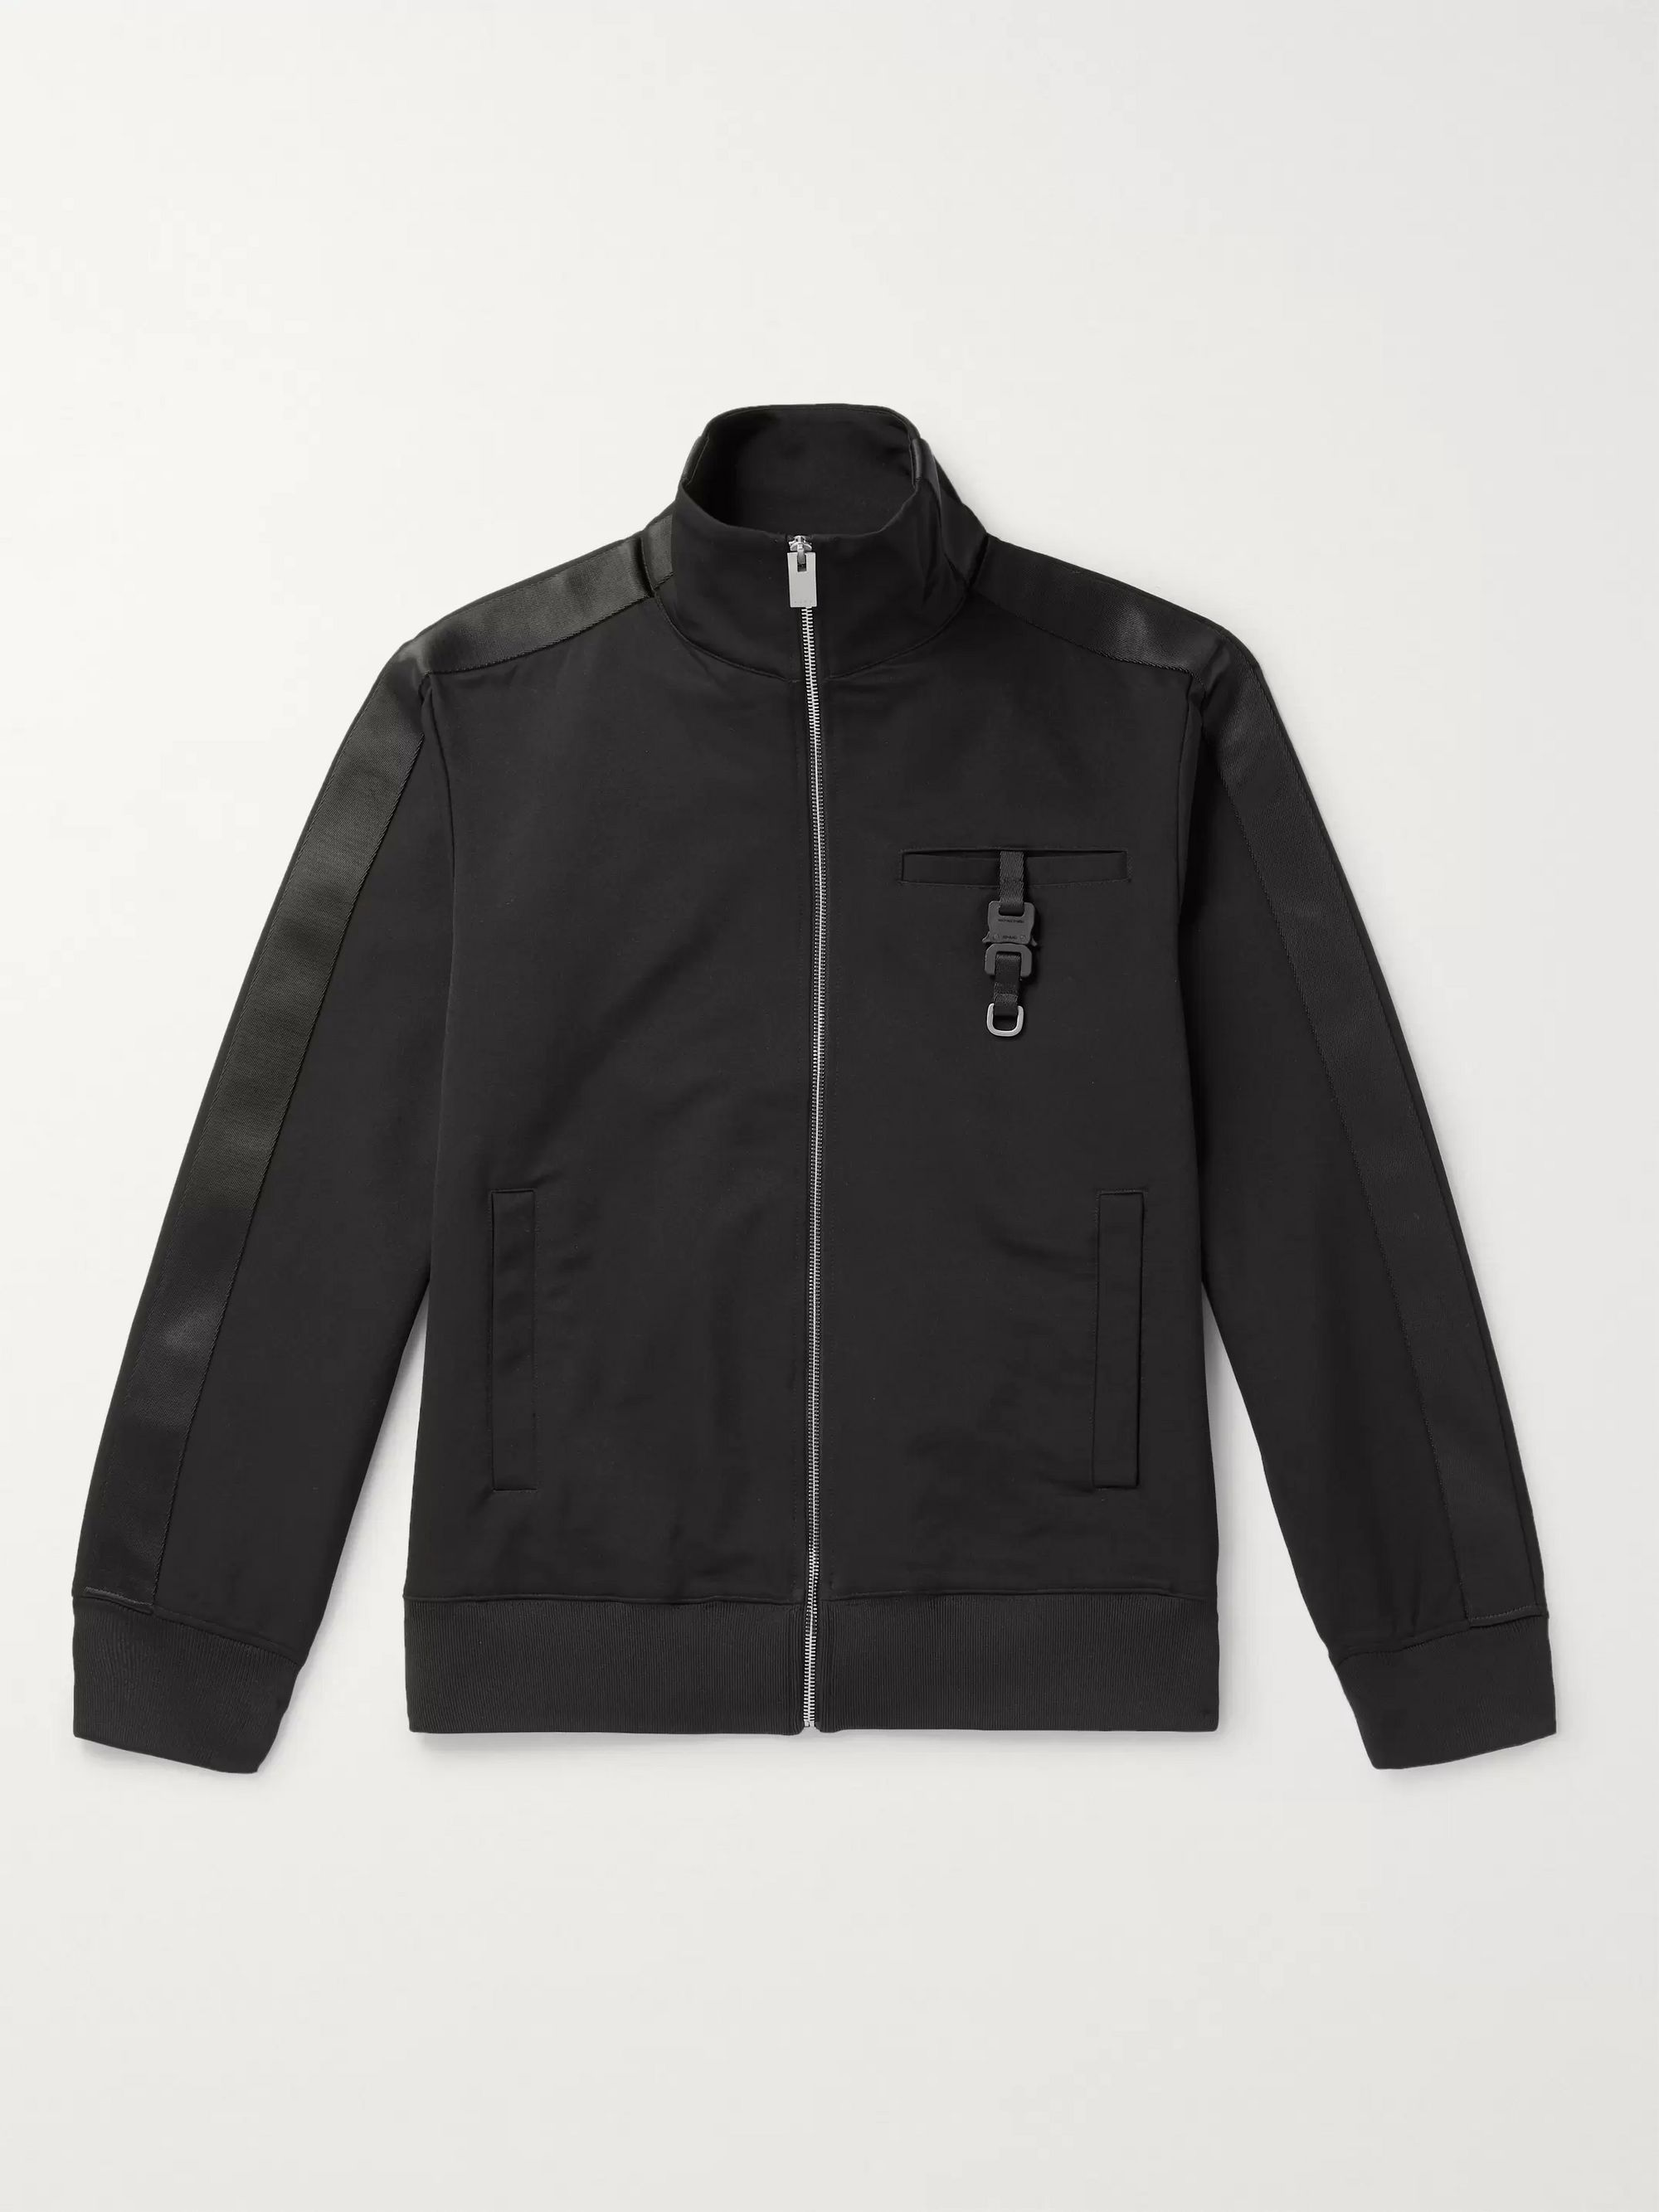 1017 ALYX 9SM Webbing-Trimmed Buckle-Detailed Neoprene Track Jacket